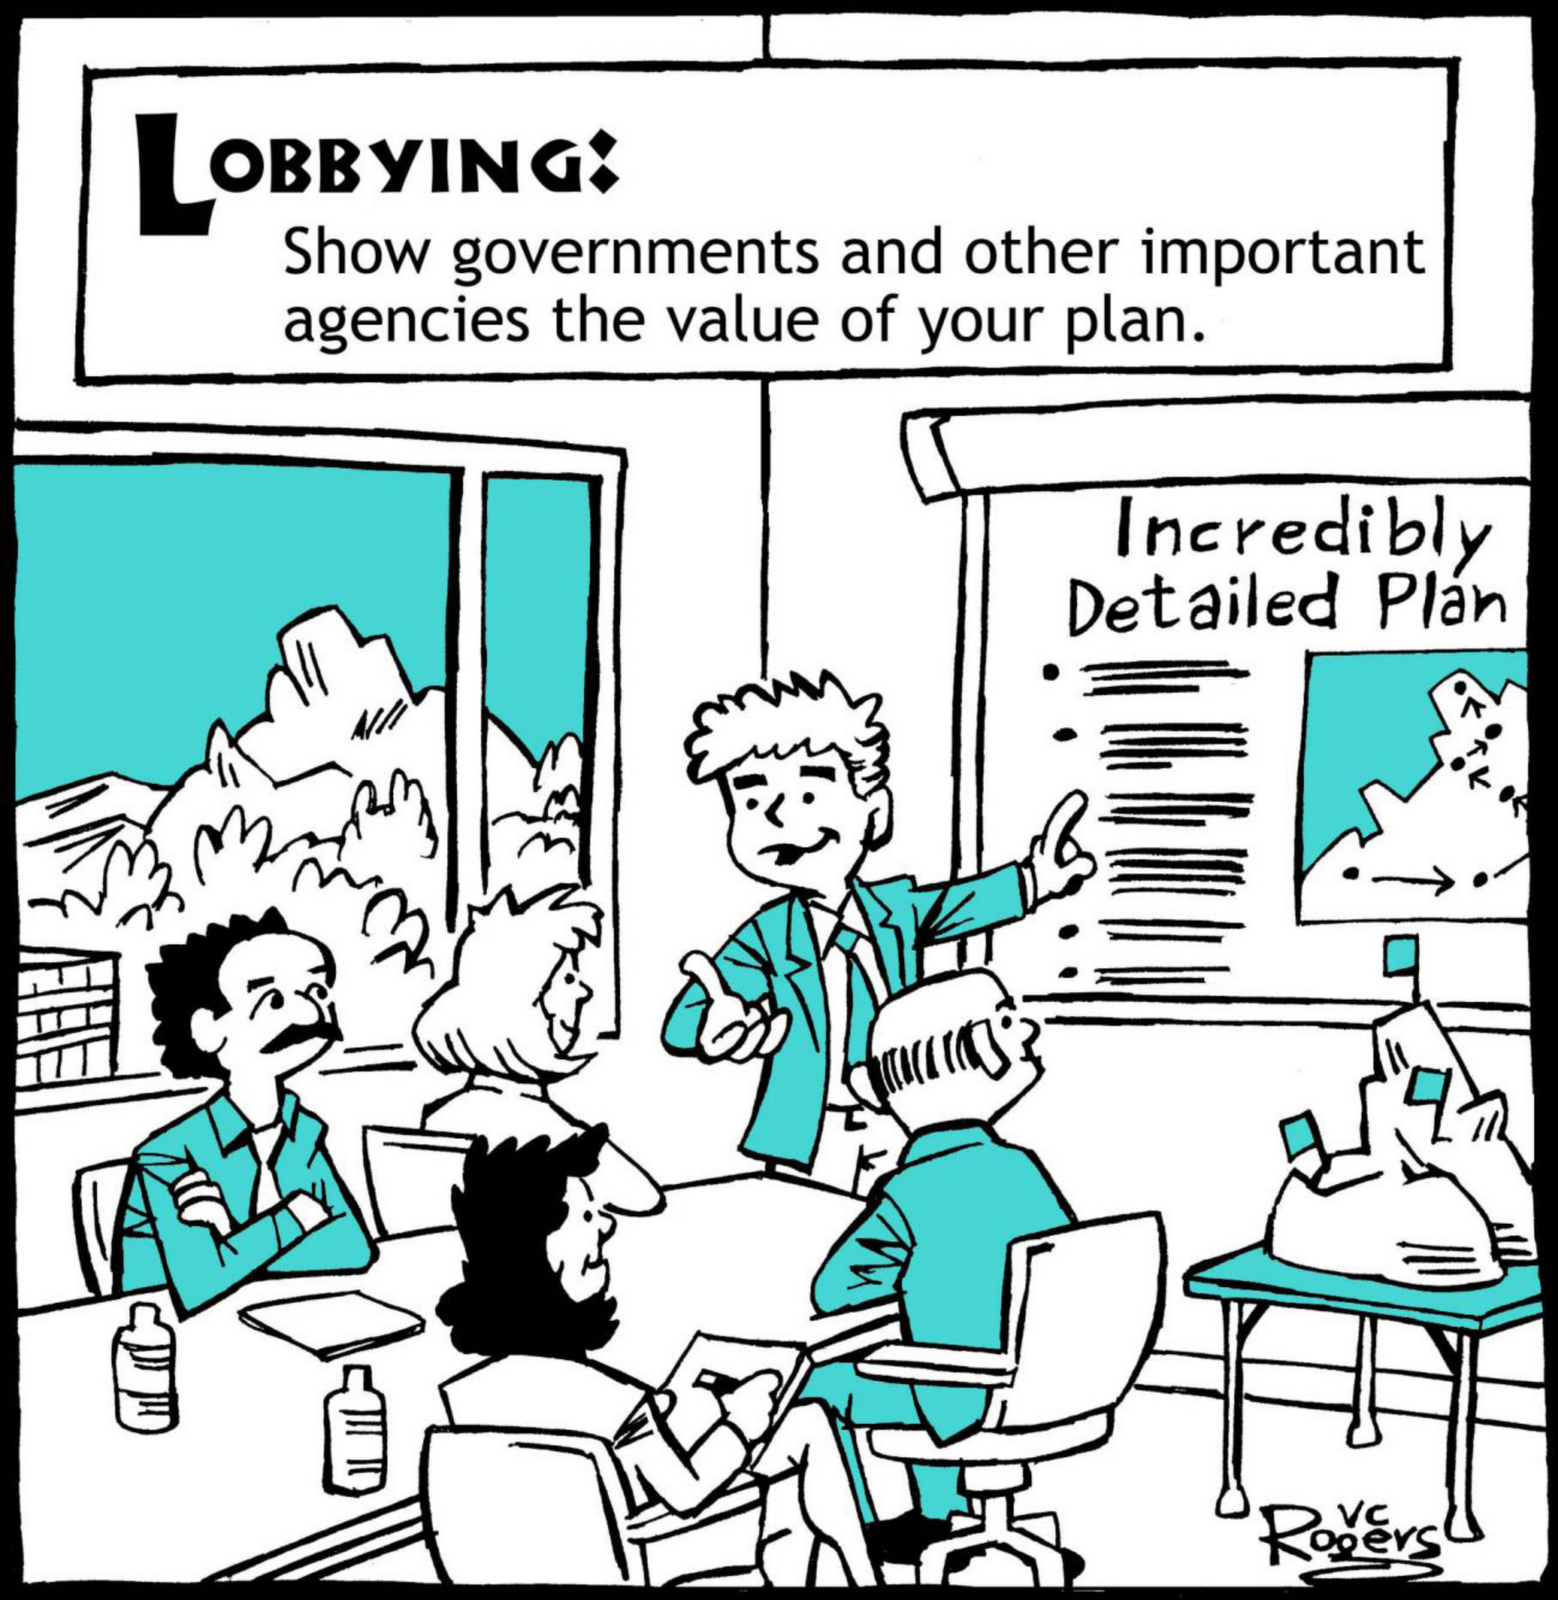 First Time Driver >> Accelerating Achievement: SCALERS Series: L is for Lobbying